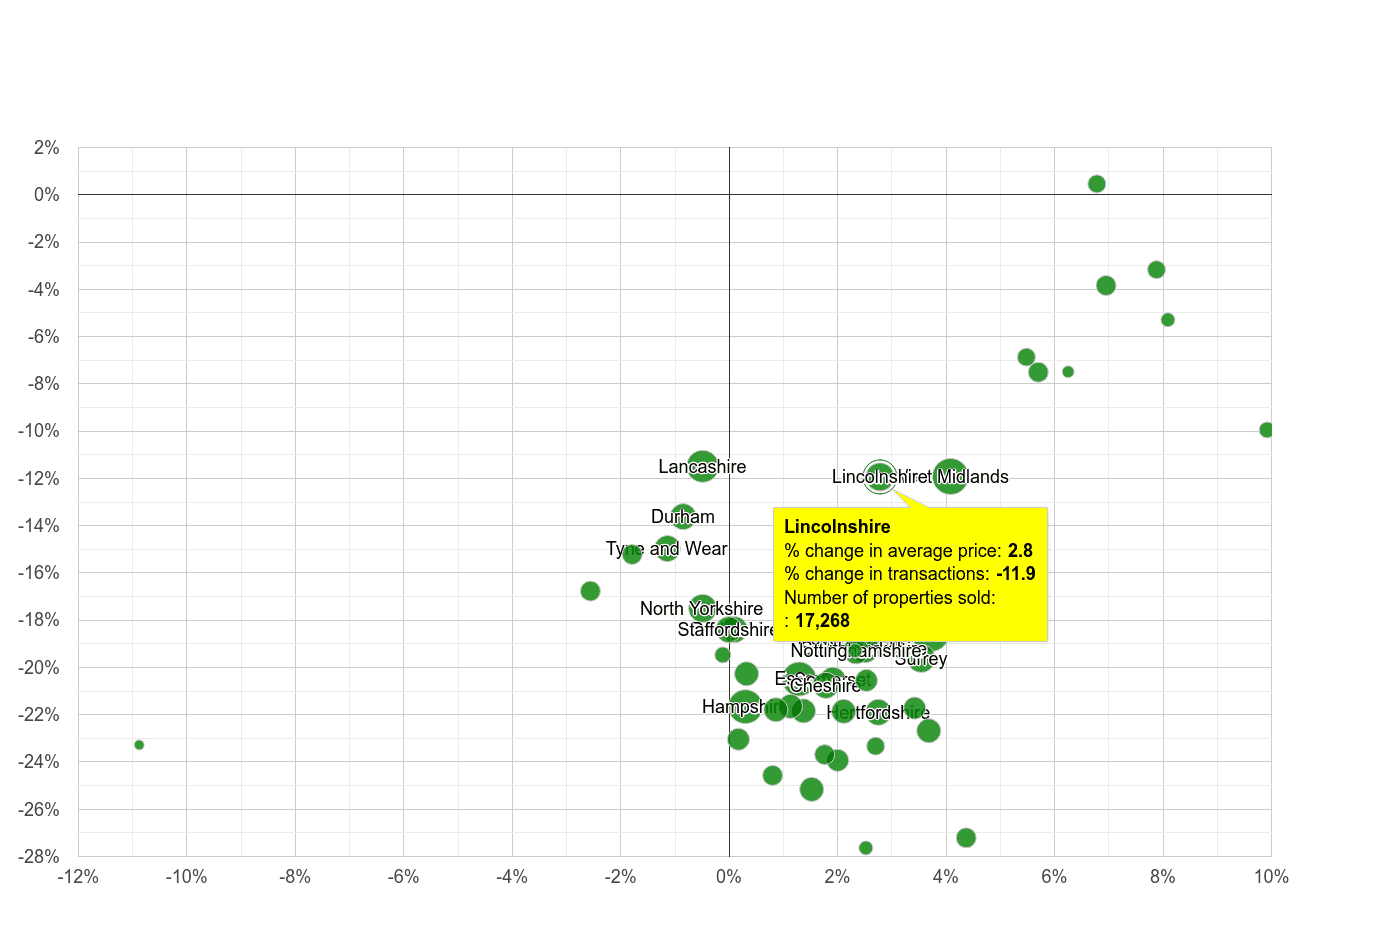 Lincolnshire property price and sales volume change relative to other counties